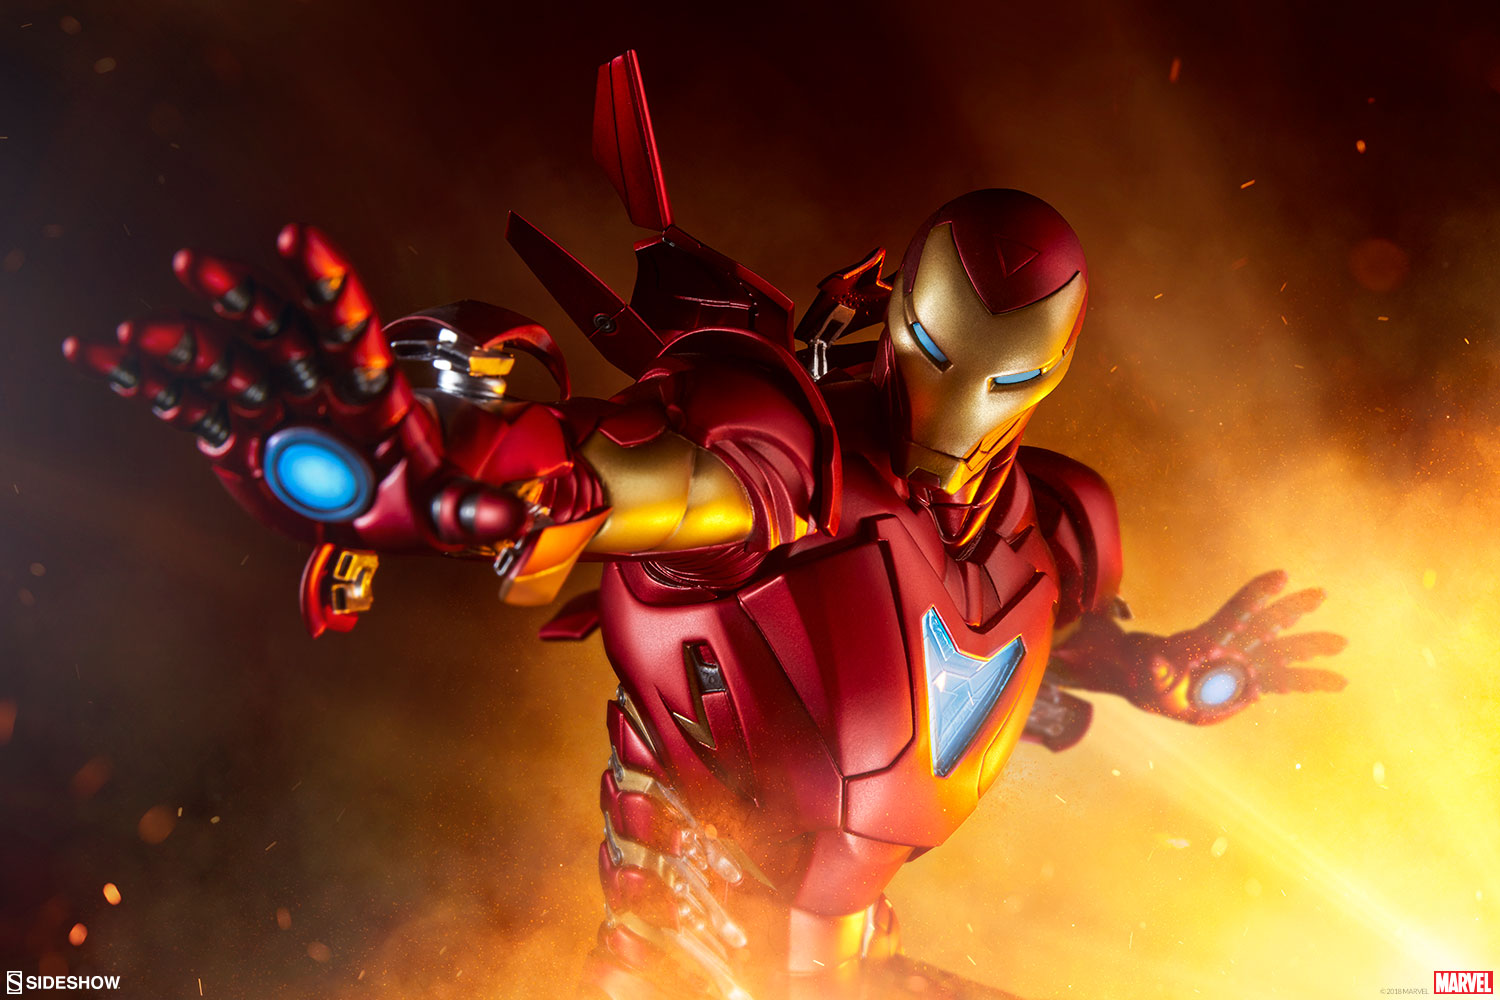 Pre-Order Sideshow Marvel Iron Man Extremis Artist Series Statue